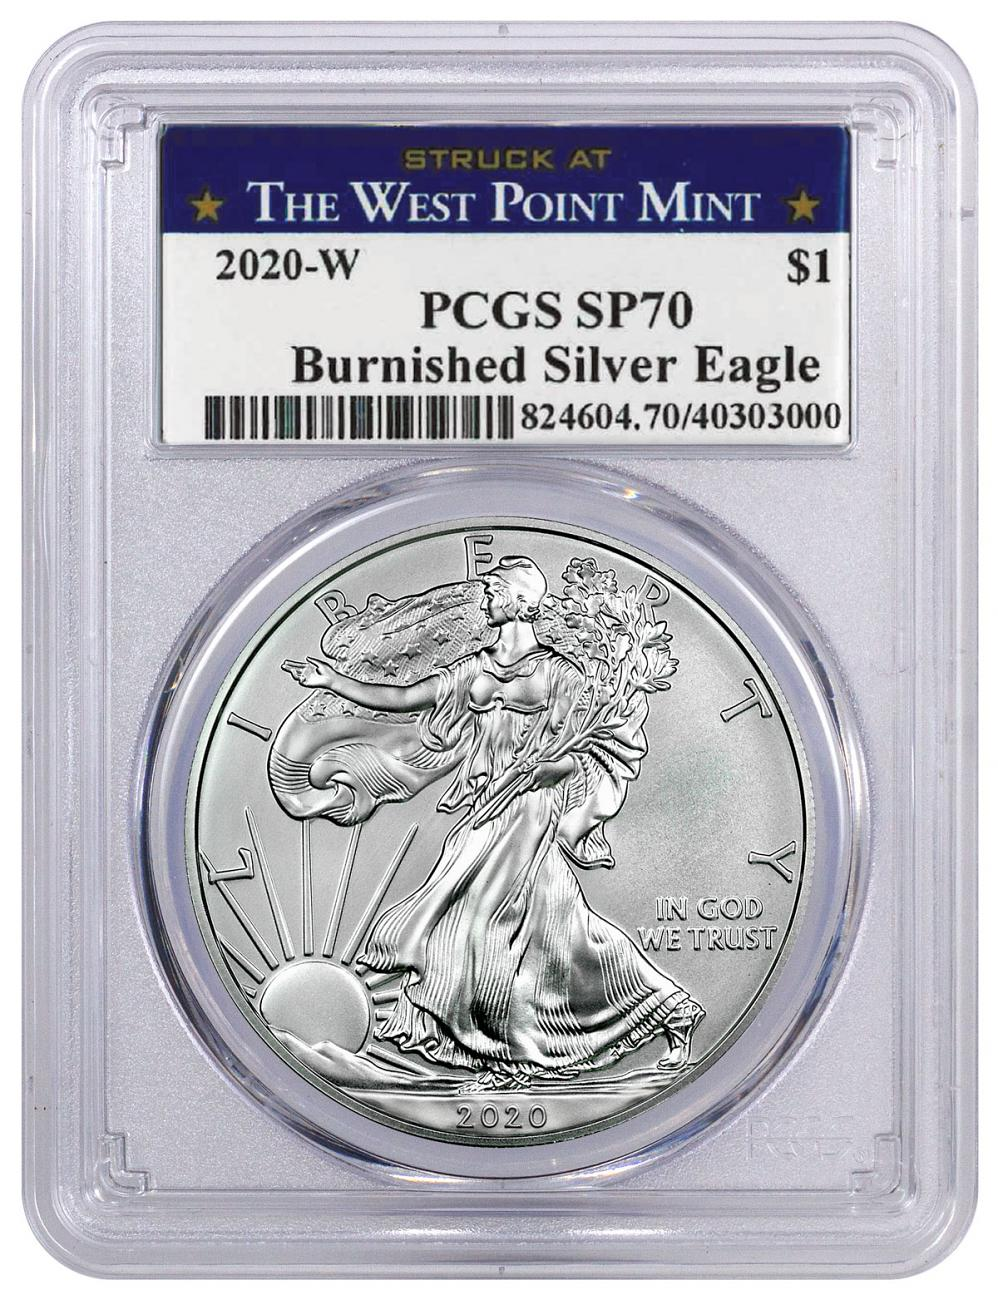 2020-W 1 oz Burnished American Silver Eagle $1 Coin PCGS SP70 Struck at West Point Label